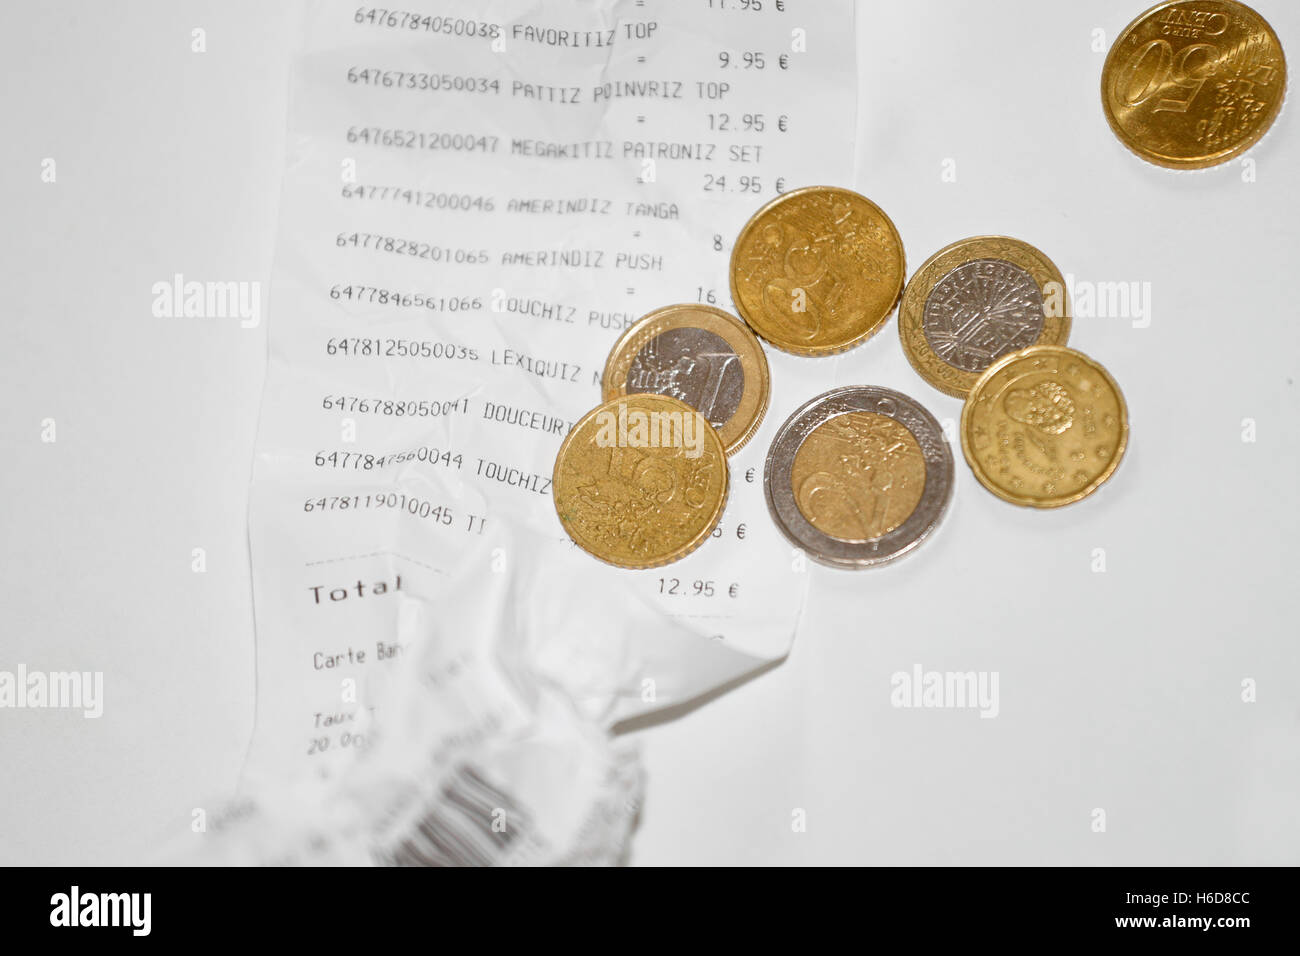 Store bill and euro coins on white background - Stock Image